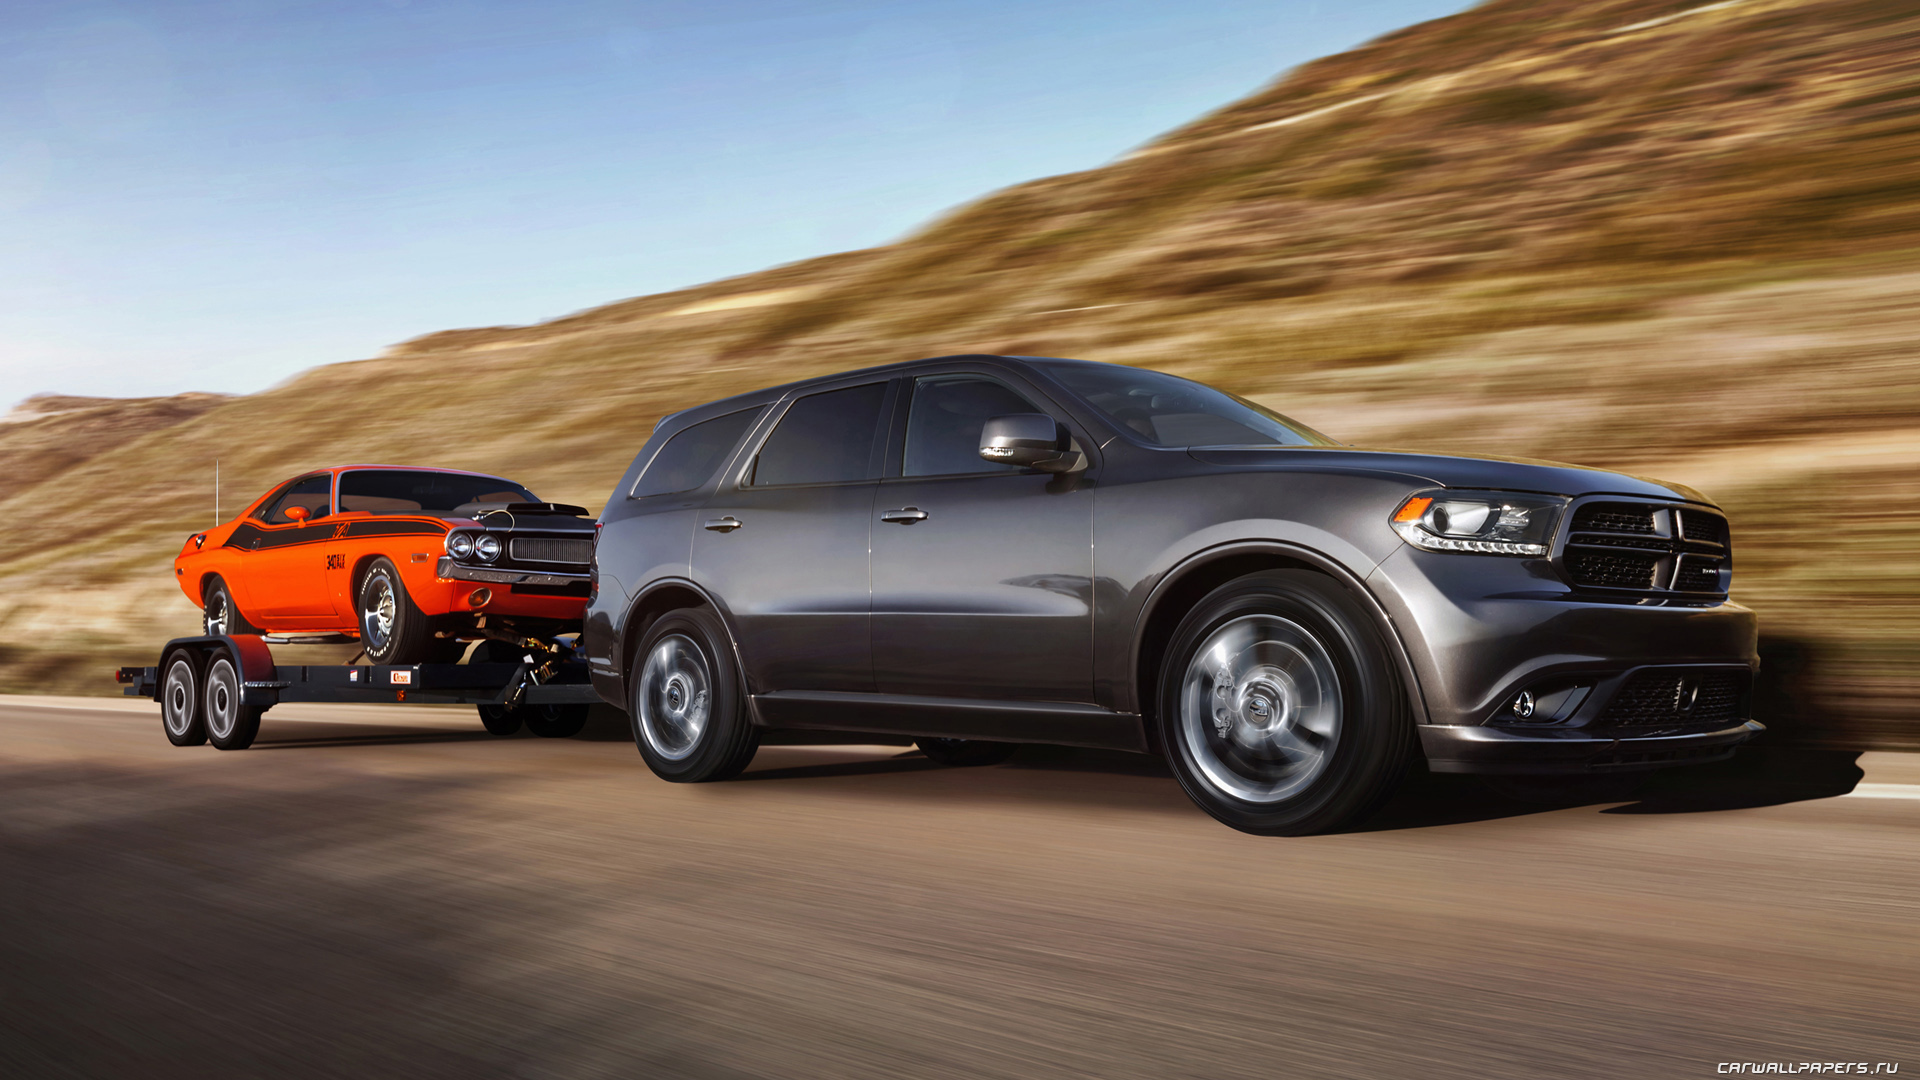 rallye roadshow model sporty dodge package looks durango to news promo gt appearance adds